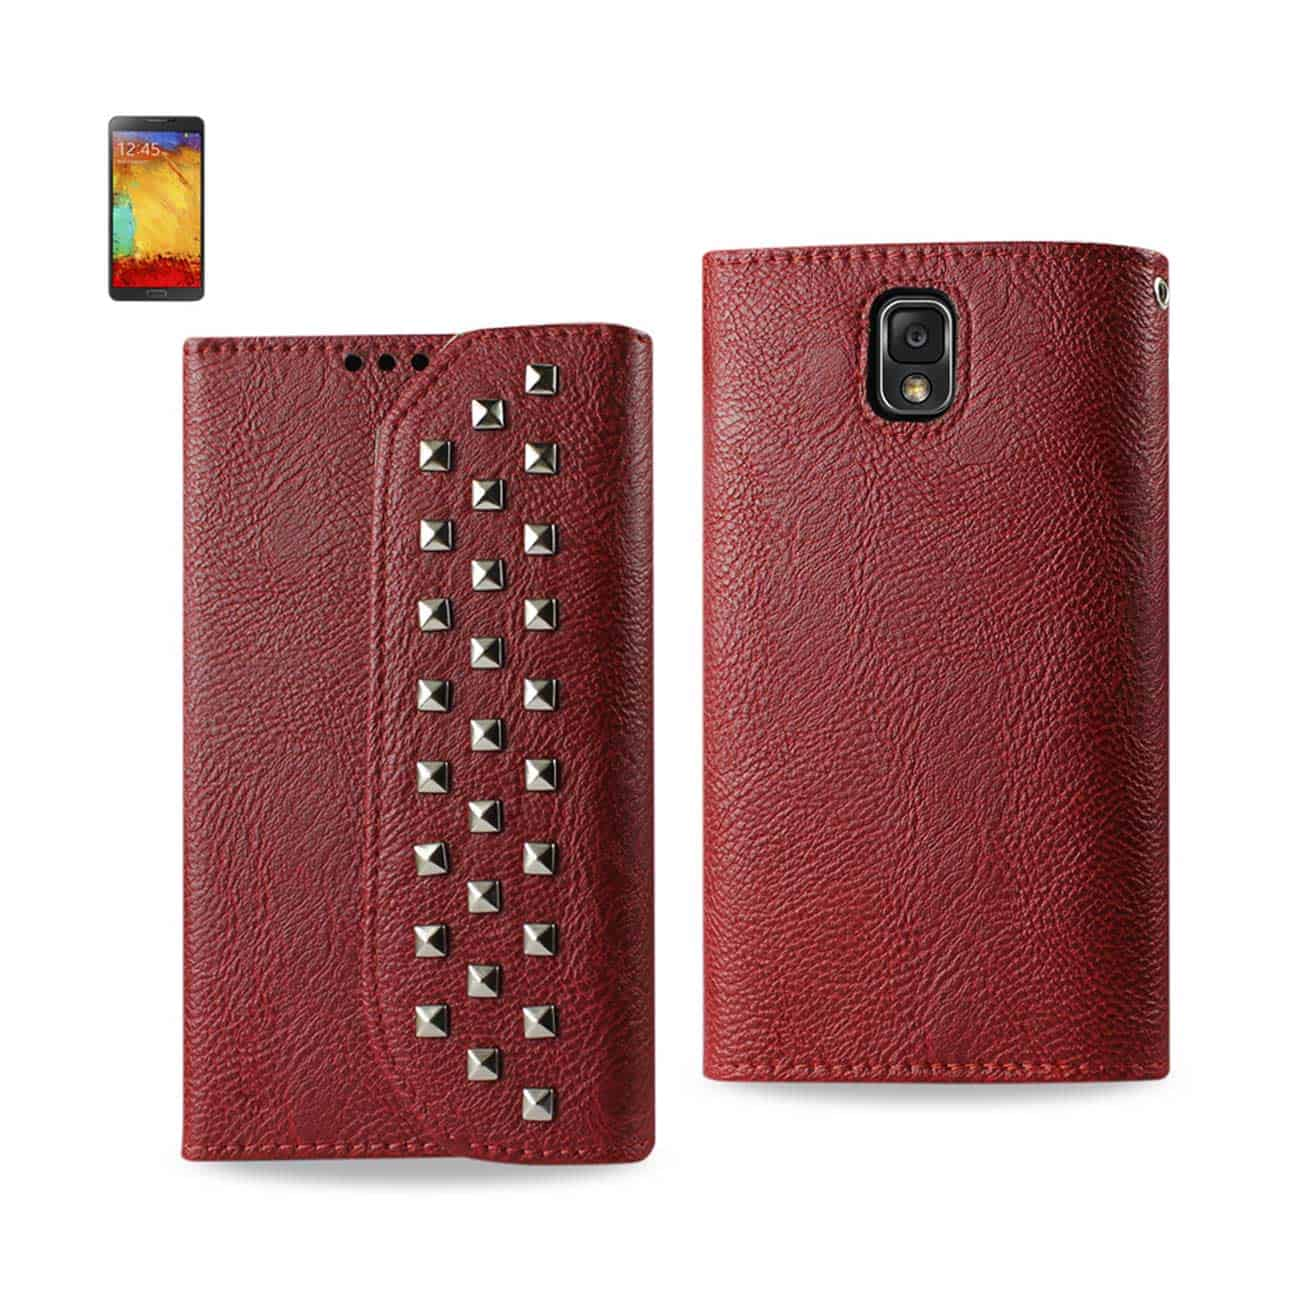 SAMSUNG GALAXY NOTE 3 STUDS WALLET CASE IN DARK RED